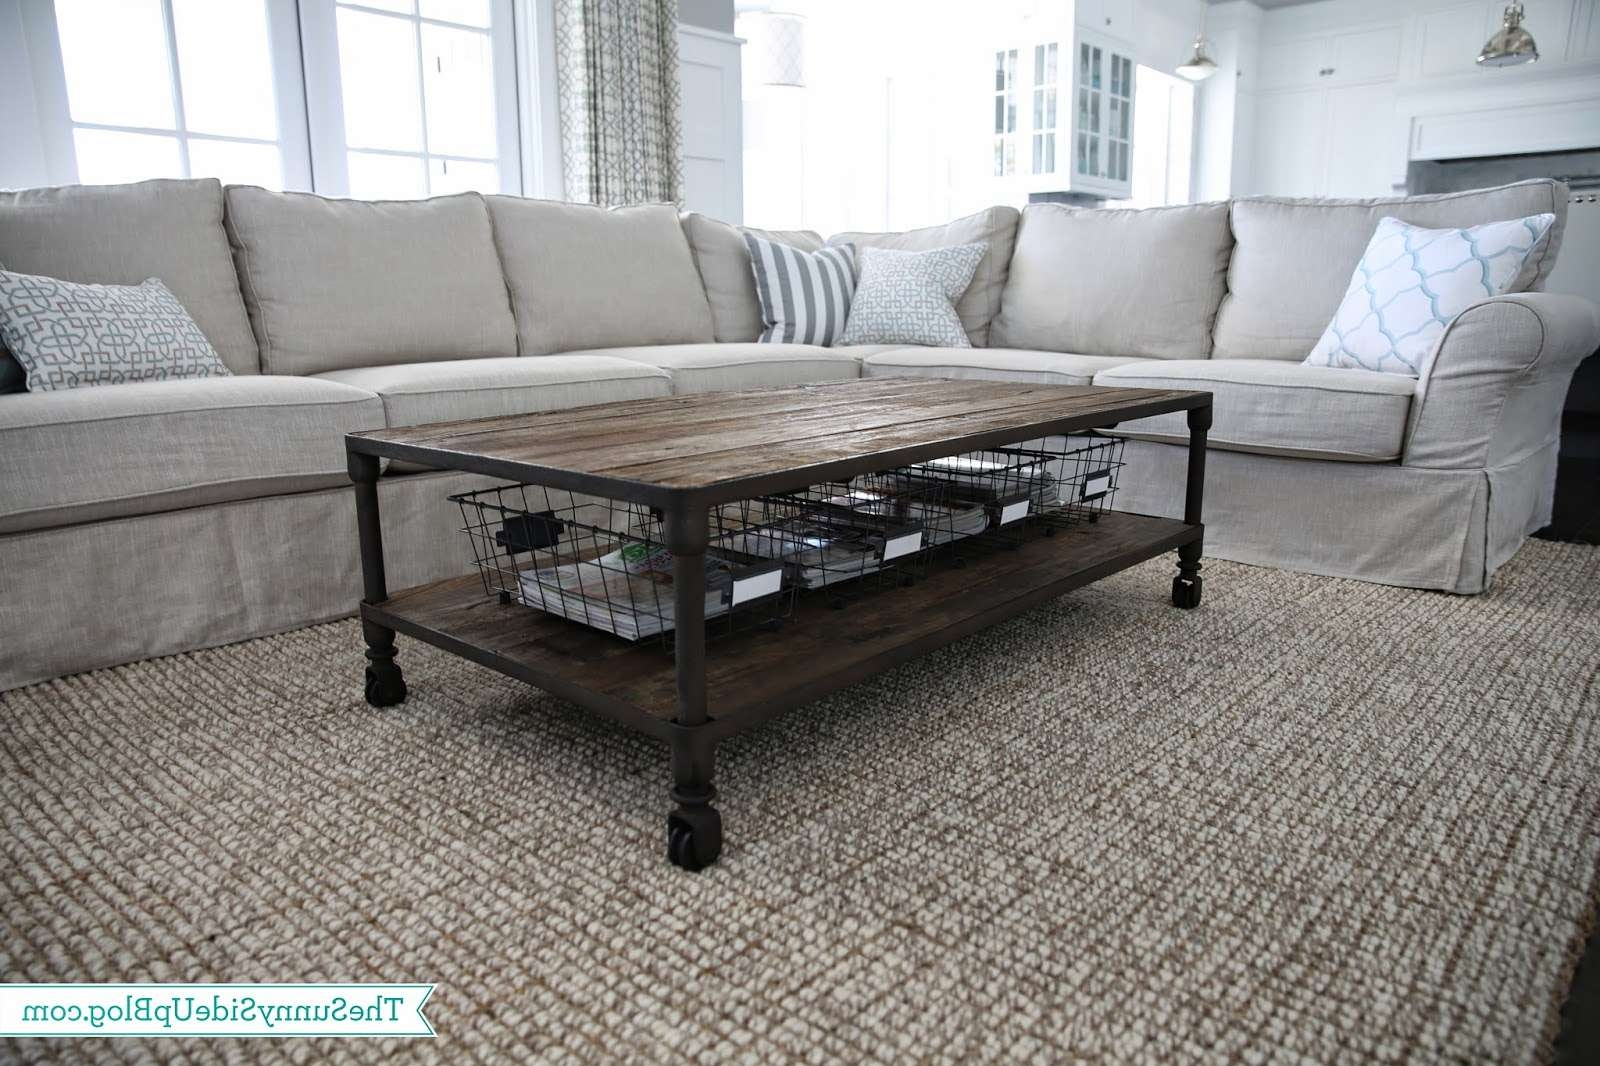 Widely Used Coffee Tables With Basket Storage Underneath With Regard To Coffee Table With Baskets Under Addicts Basket Storage Under / Thippo (View 7 of 20)